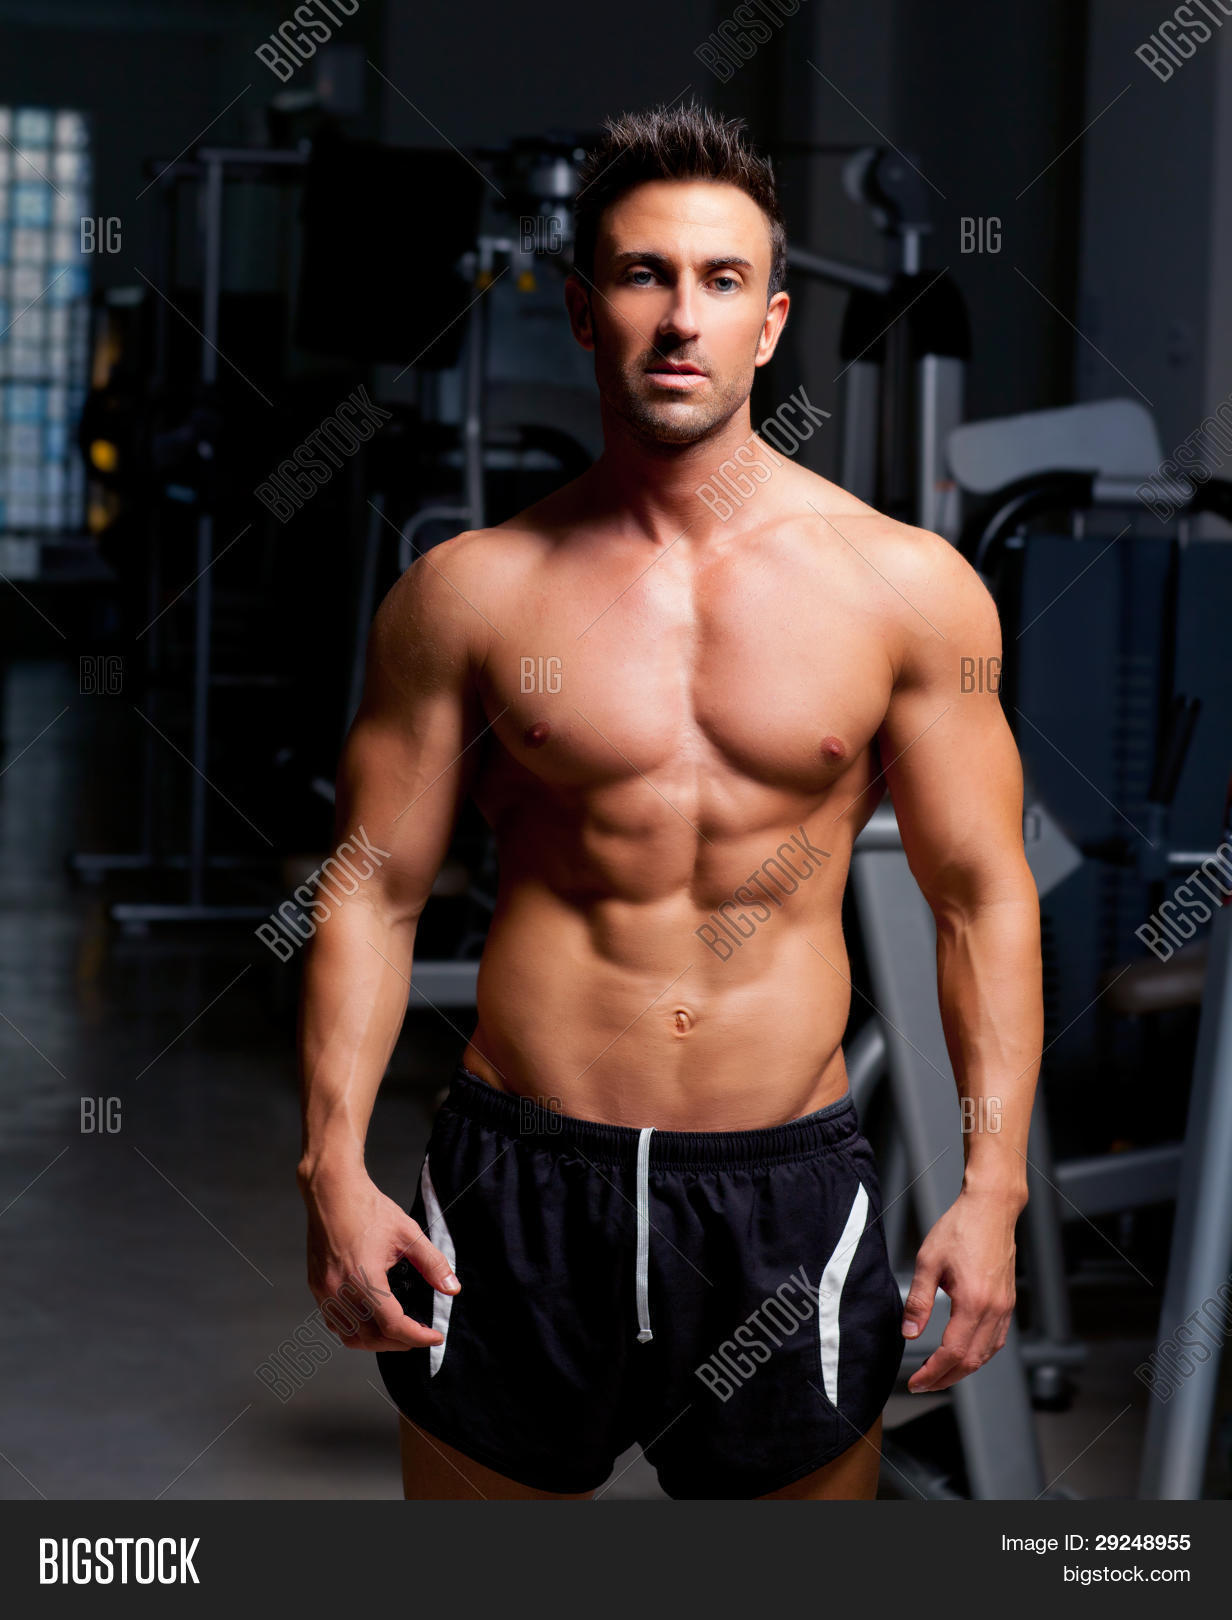 Fitness Shaped Muscle Image & Photo (Free Trial) | Bigstock